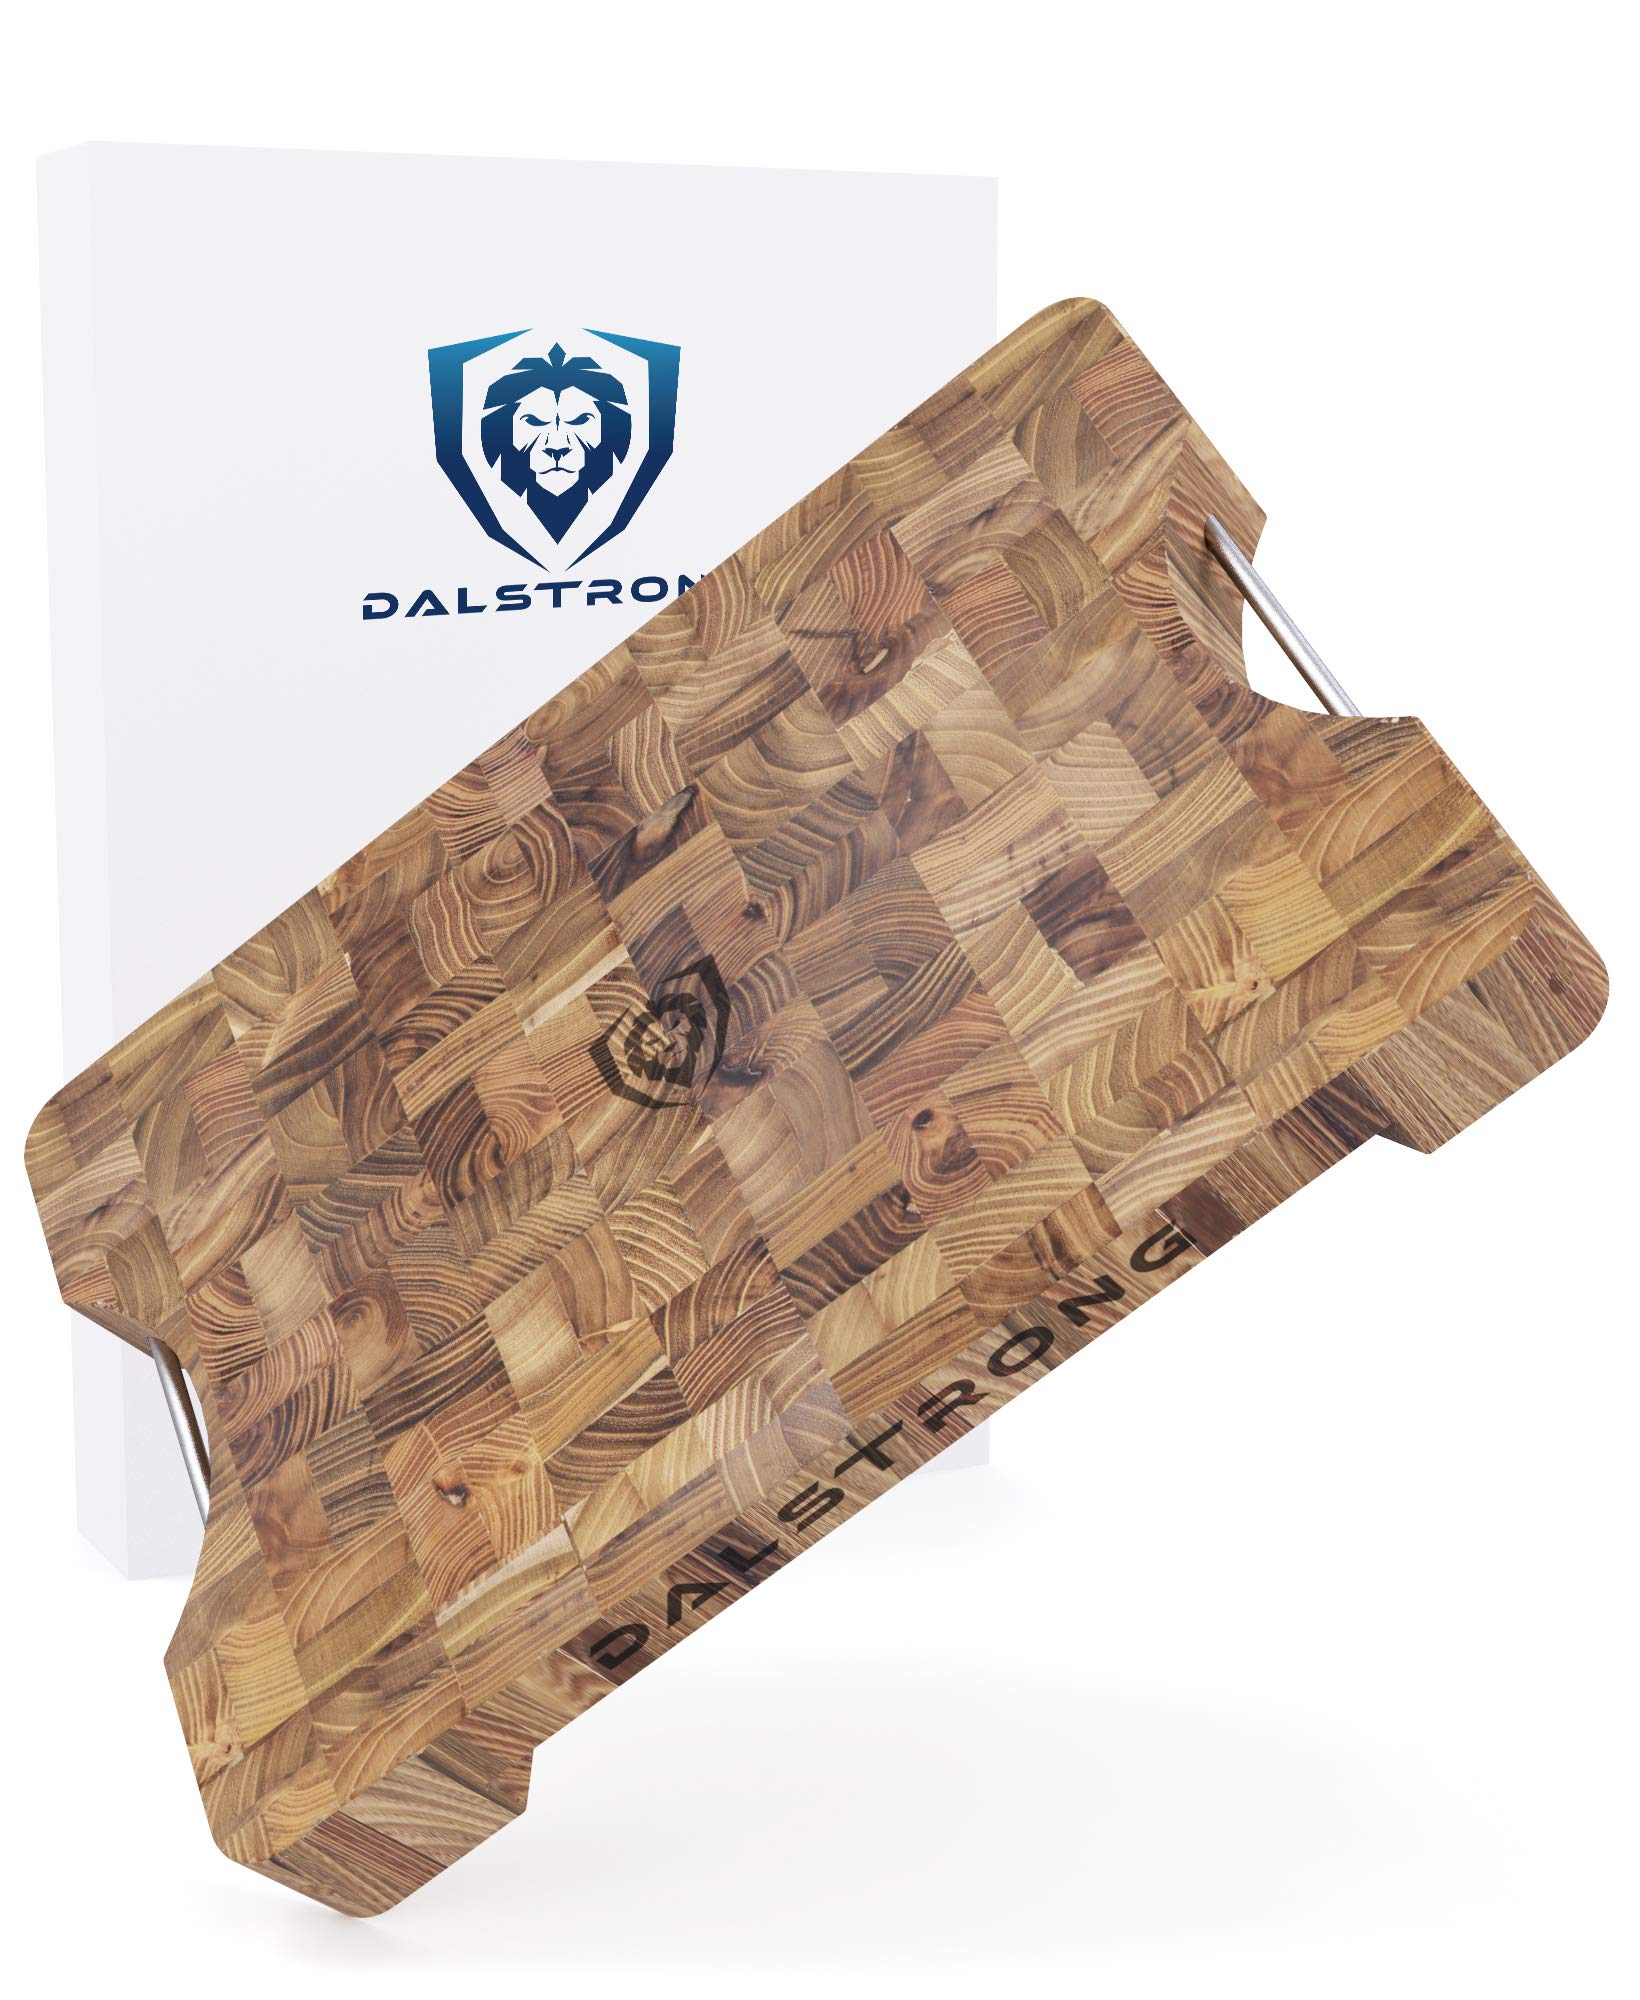 DALSTRONG Lionswood End-Grain Teak Cutting Board - Medium - w/Steel Carrying Handles 15.8'' x 11.8'' x 1.9'' - Gift Packaging by Dalstrong